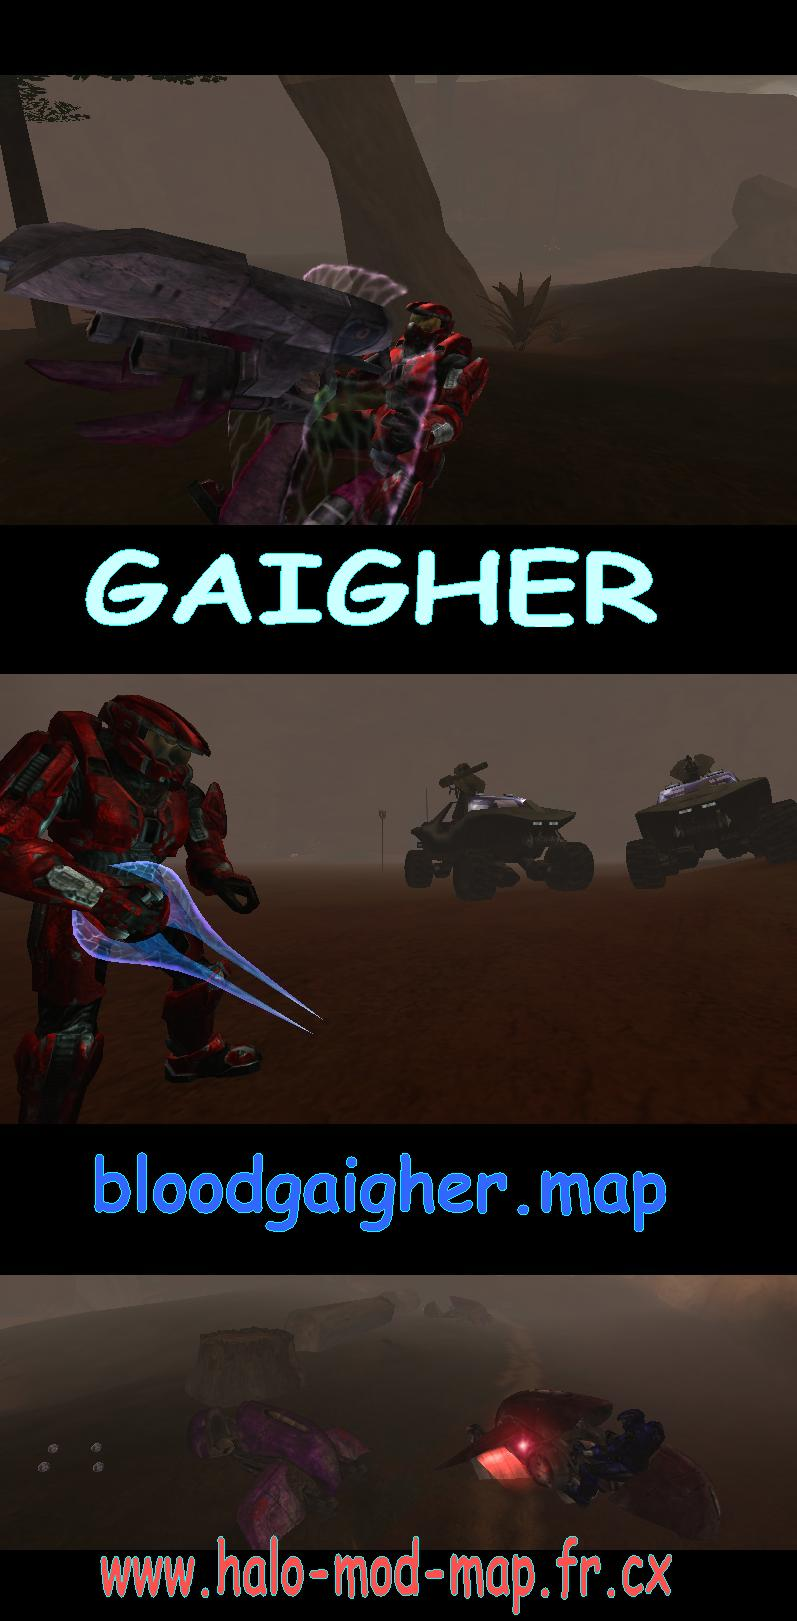 BloodGAIGHER maphaloce map halo ce maphalo halomap carte cartes création GAIGHER mod